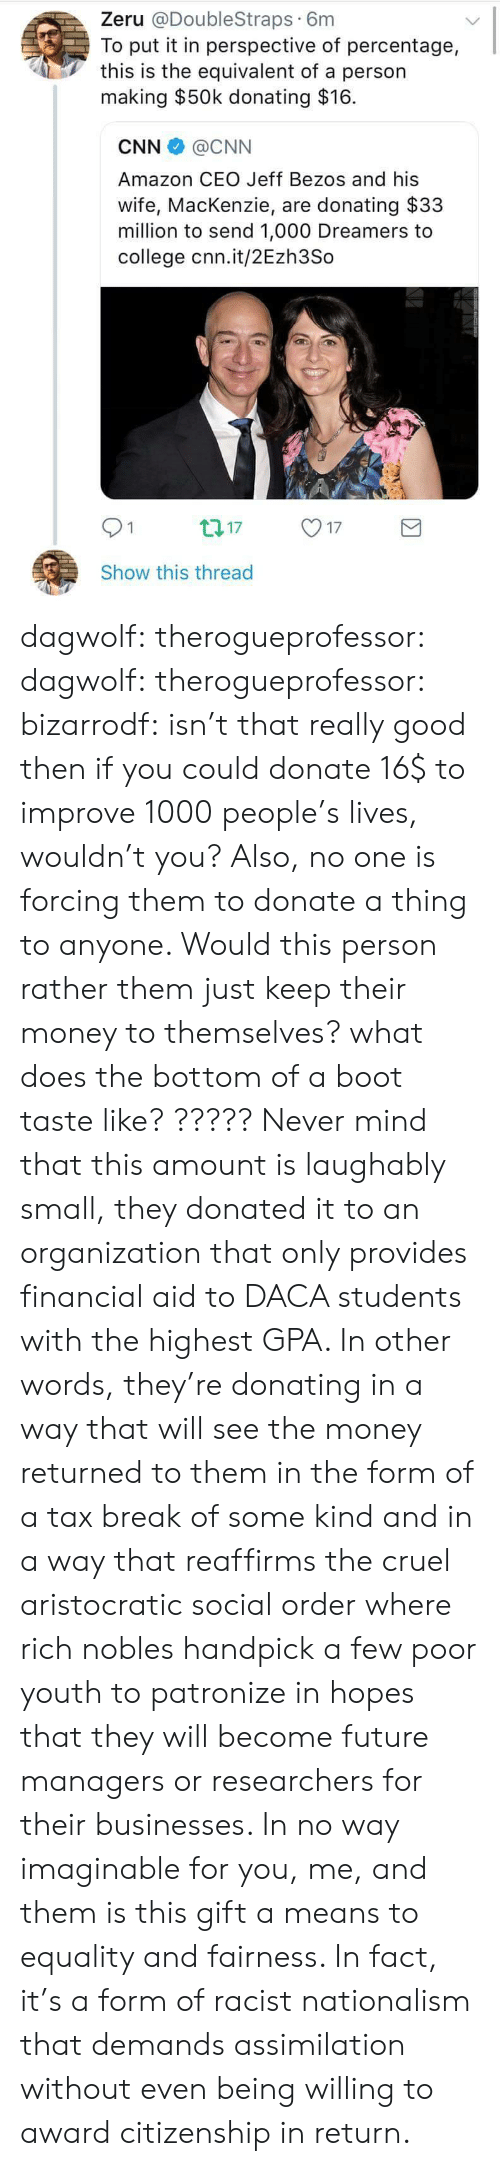 mackenzie: Zeru @DoubleStraps 6m  To put it in perspective of percentage,  this is the equivalent of a person  making $50k donating $16.  CNN @CNN  Amazon CEO Jeff Bezos and his  wife, MacKenzie, are donating $33  million to send 1,000 Dreamers to  college cnn.it/2Ezh3So  01  17  Show this thread dagwolf:  therogueprofessor:  dagwolf:  therogueprofessor:   bizarrodf:  isn't that really good then if you could donate 16$ to improve 1000 people's lives, wouldn't you?  Also, no one is forcing them to donate a thing to anyone. Would this person rather them just keep their money to themselves?   what does the bottom of a boot taste like?  ?????  Never mind that this amount is laughably small, they donated it to an organization that only provides financial aid to DACA students with the highest GPA. In other words, they're donating in a way that will see the money returned to them in the form of a tax break of some kind and in a way that reaffirms the cruel aristocratic social order where rich nobles handpick a few poor youth to patronize in hopes that they will become future managers or researchers for their businesses. In no way imaginable for you, me, and them is this gift a means to equality and fairness. In fact, it's a form of racist nationalism that demands assimilation without even being willing to award citizenship in return.